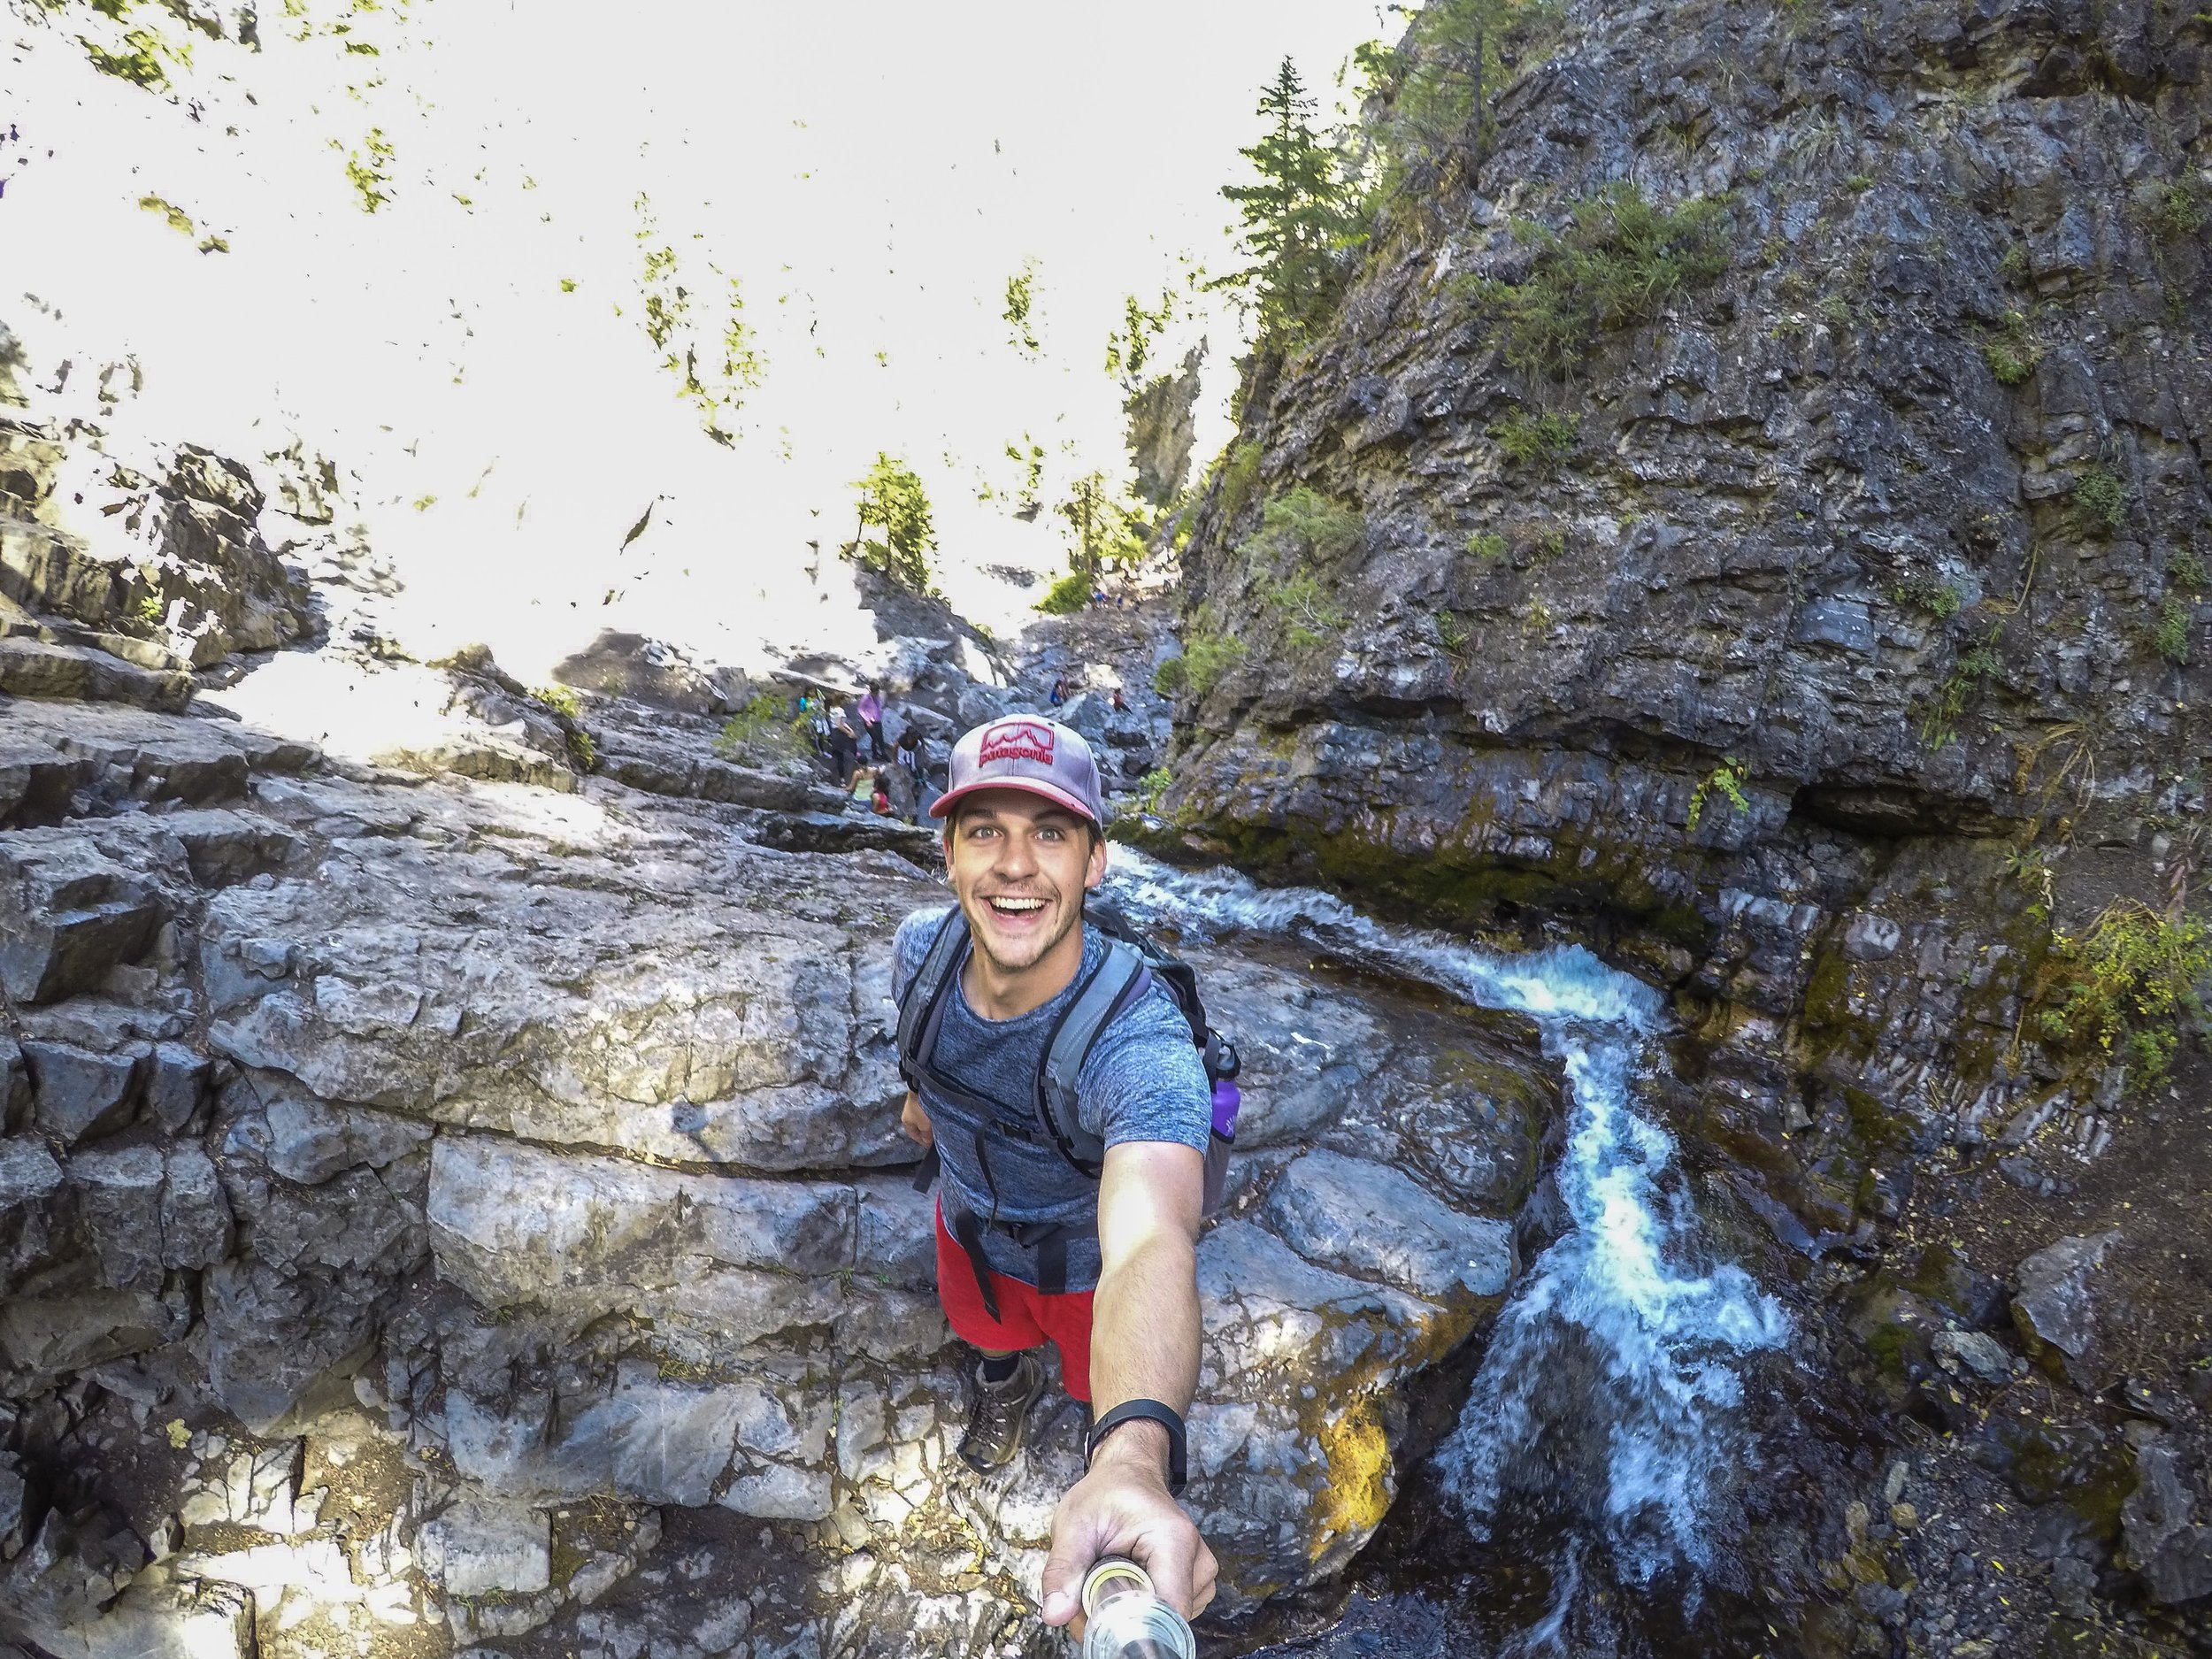 Cody above Donut Falls